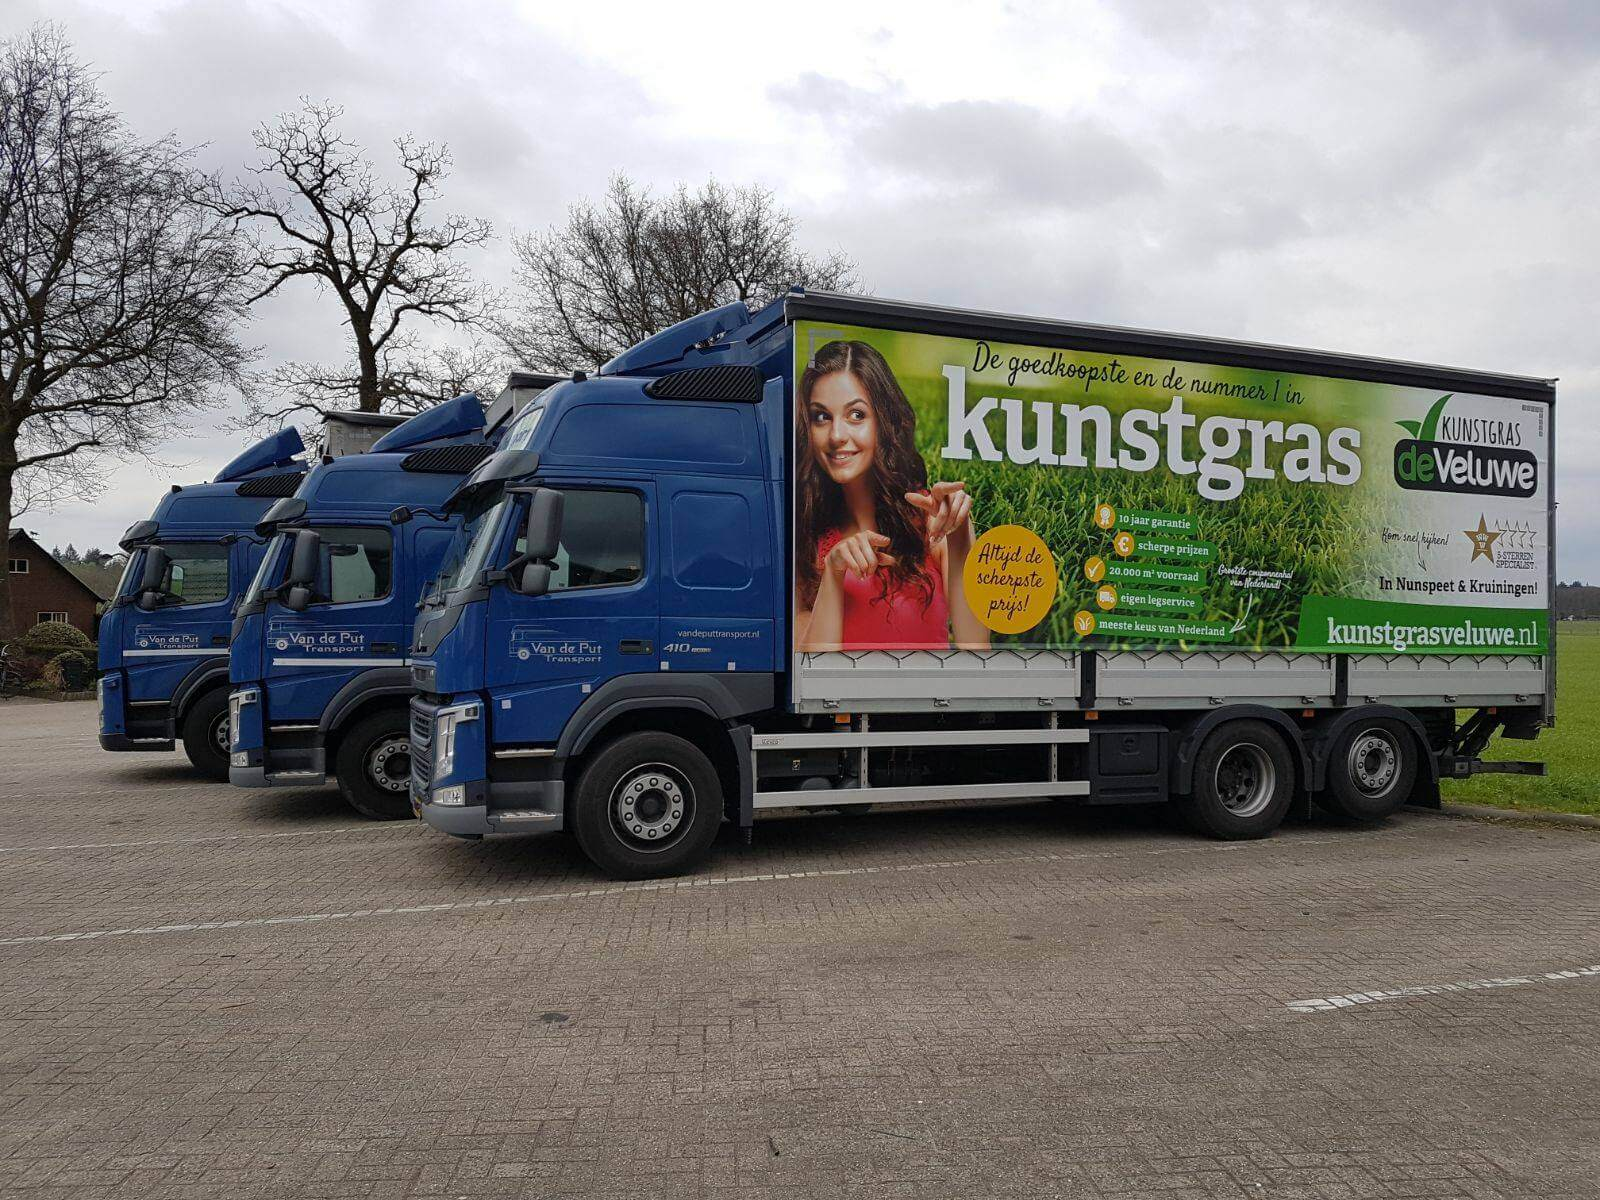 Van de Put Transport - Partner in Logistiek Kunst de Veluwe